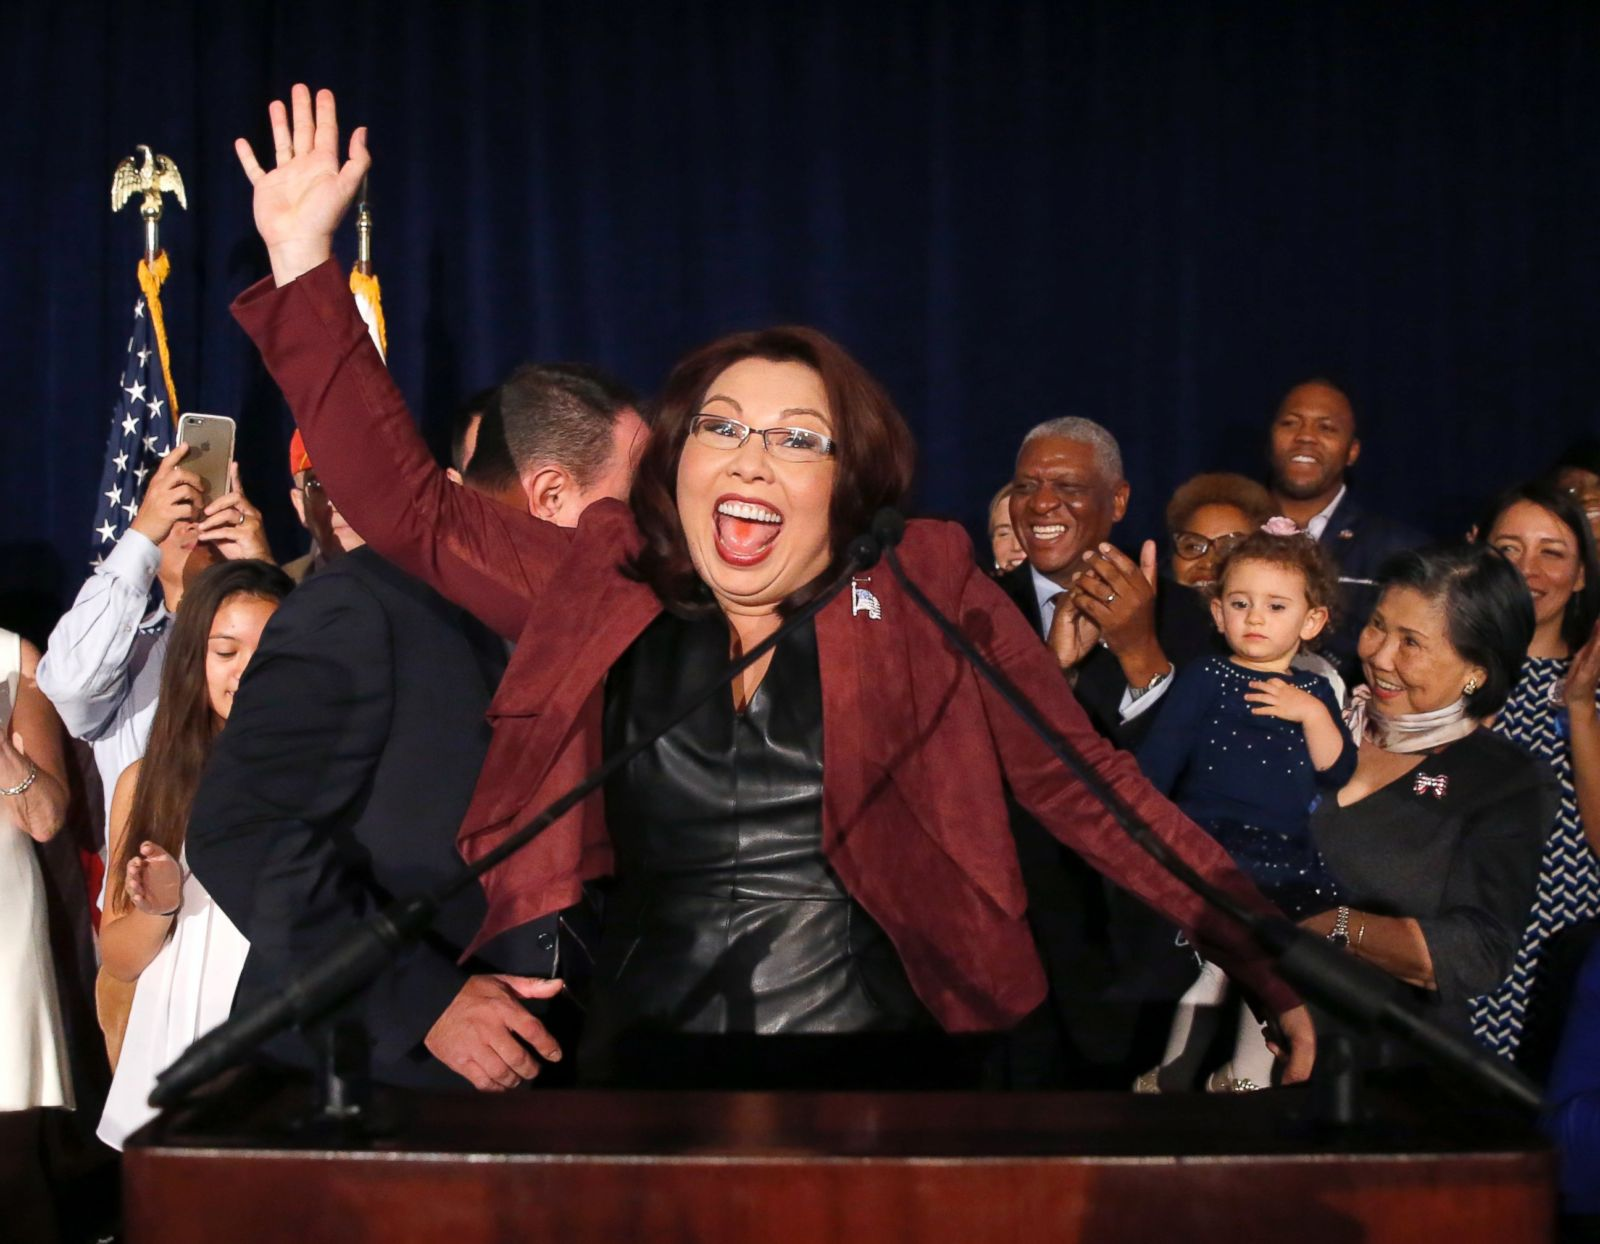 Best Photos from Election Night 2016 Photos - ABC News